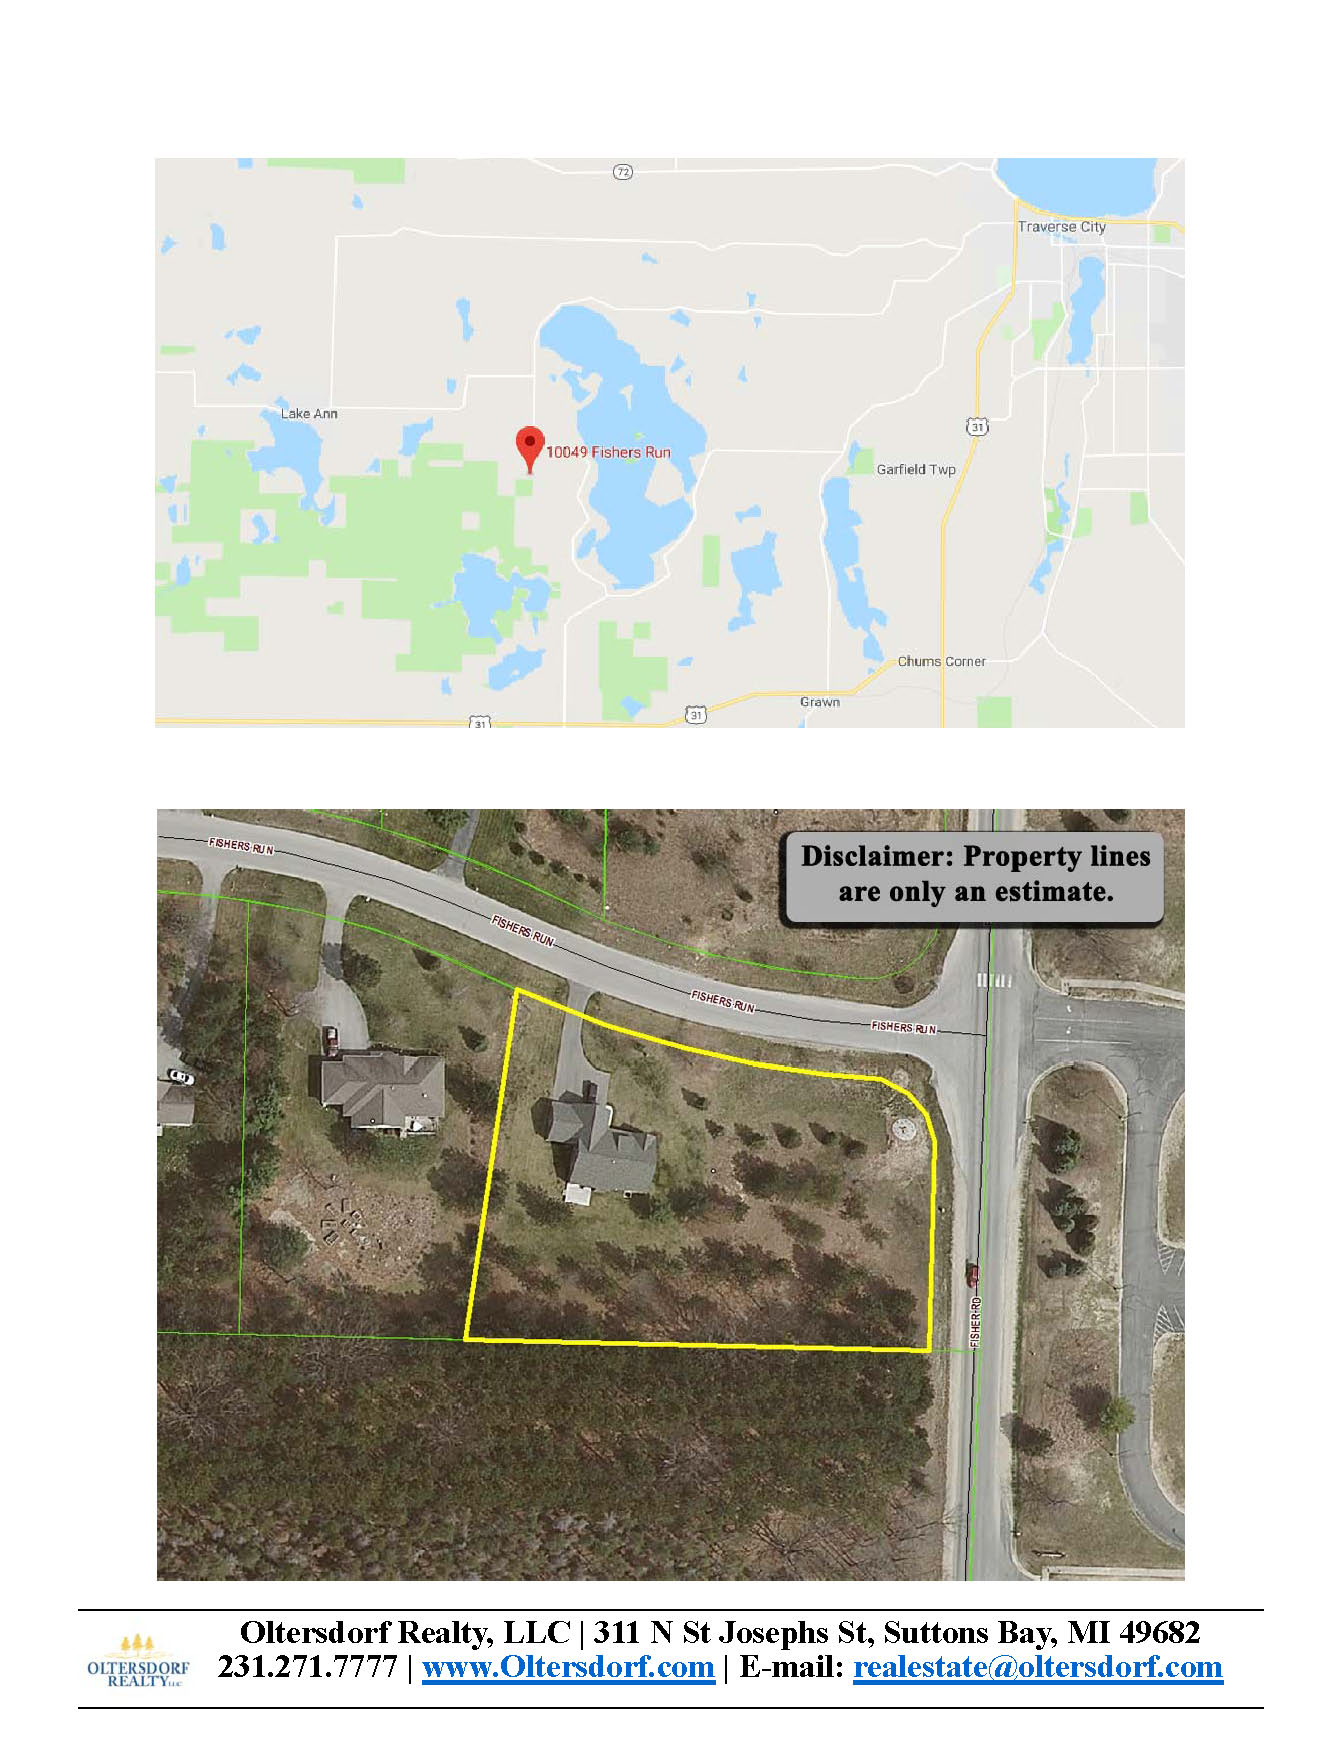 10049 Fishers Run, Traverse City, MI – Newer 2,175 Sq Ft Home on 1.32 Acres - Marketing Packet (11).jpg